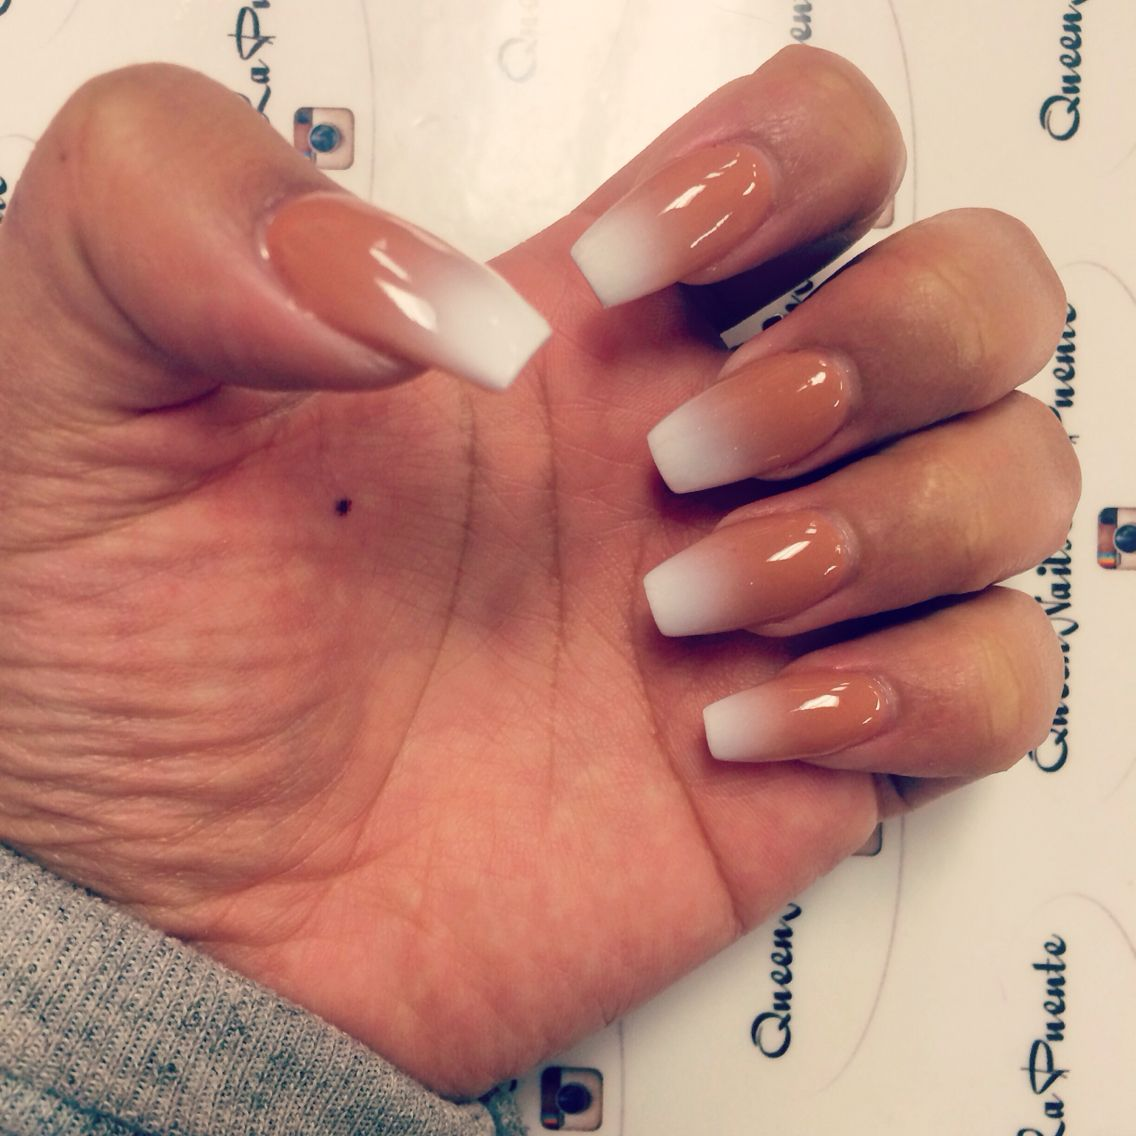 Pin by Valencia Allen on Nails | Pinterest | Youtube, Makeup and ...